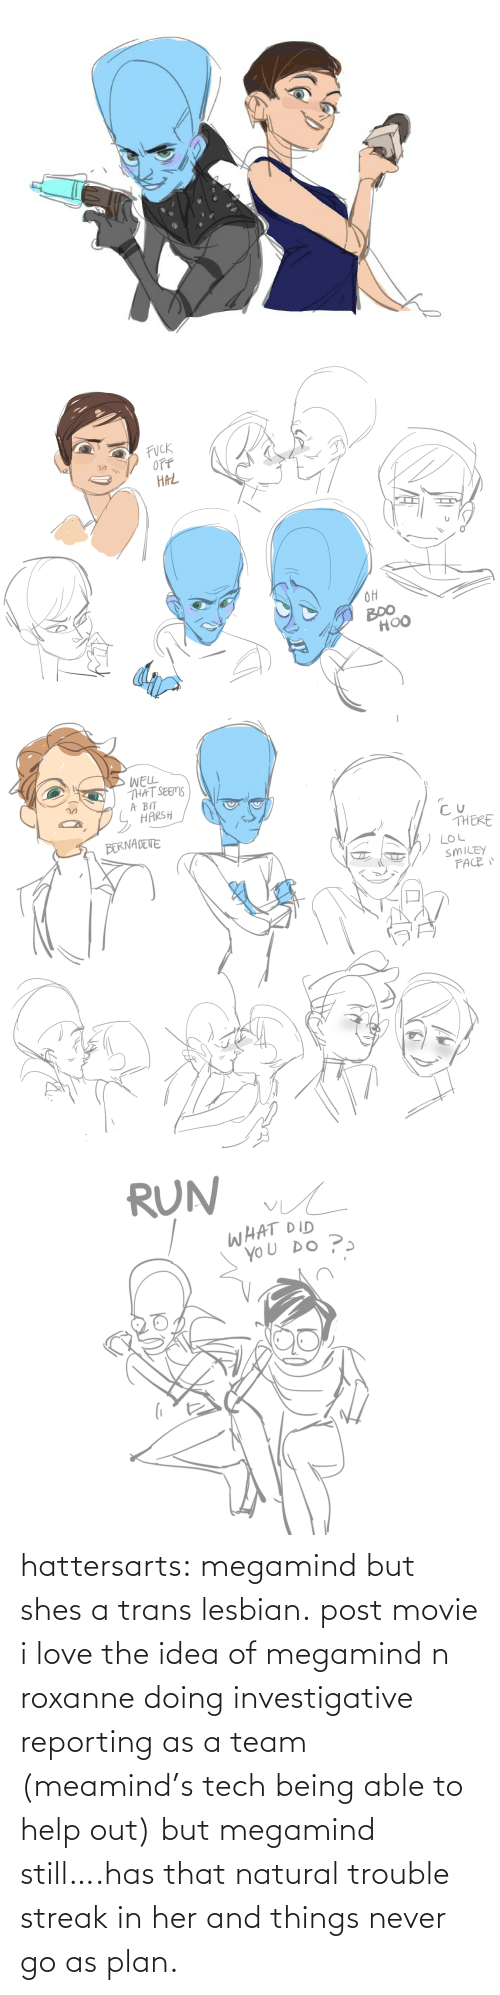 Plan: hattersarts:  megamind but shes a trans lesbian.  post movie i love the idea of megamind n roxanne doing investigative reporting as a team (meamind's tech being able to help out) but megamind still….has that natural trouble streak in her and things never go as plan.